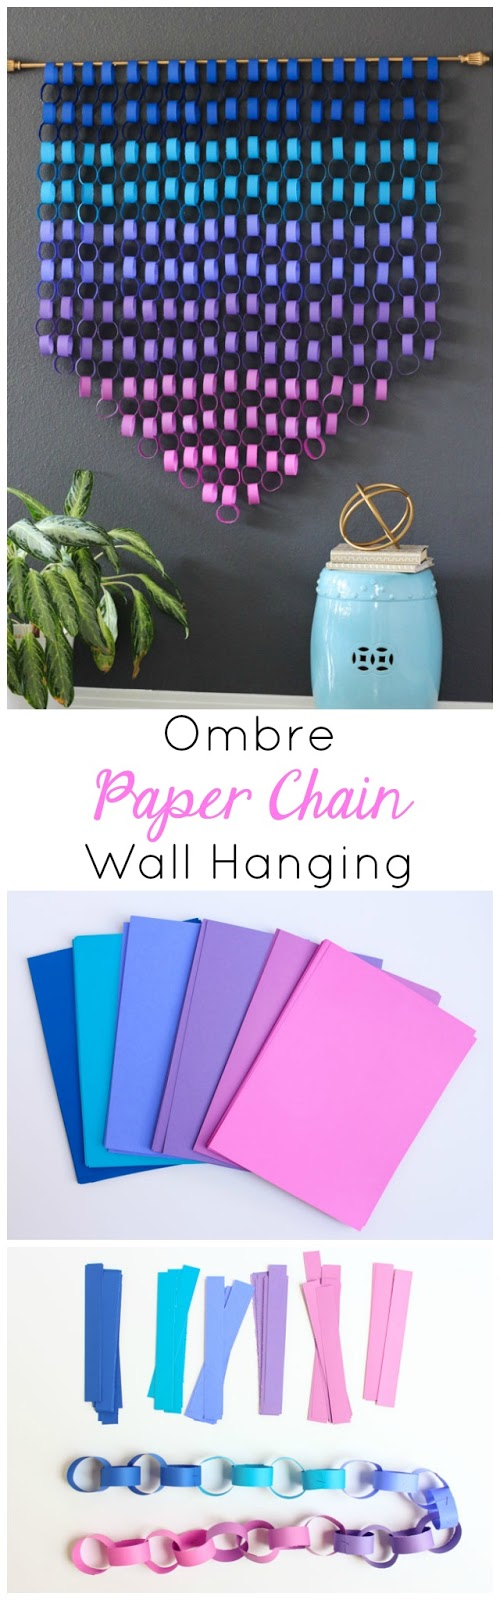 Make gorgeous modern paper wall art with simple paper chains! #paperchains #astrobrights #papercrafting #wallart